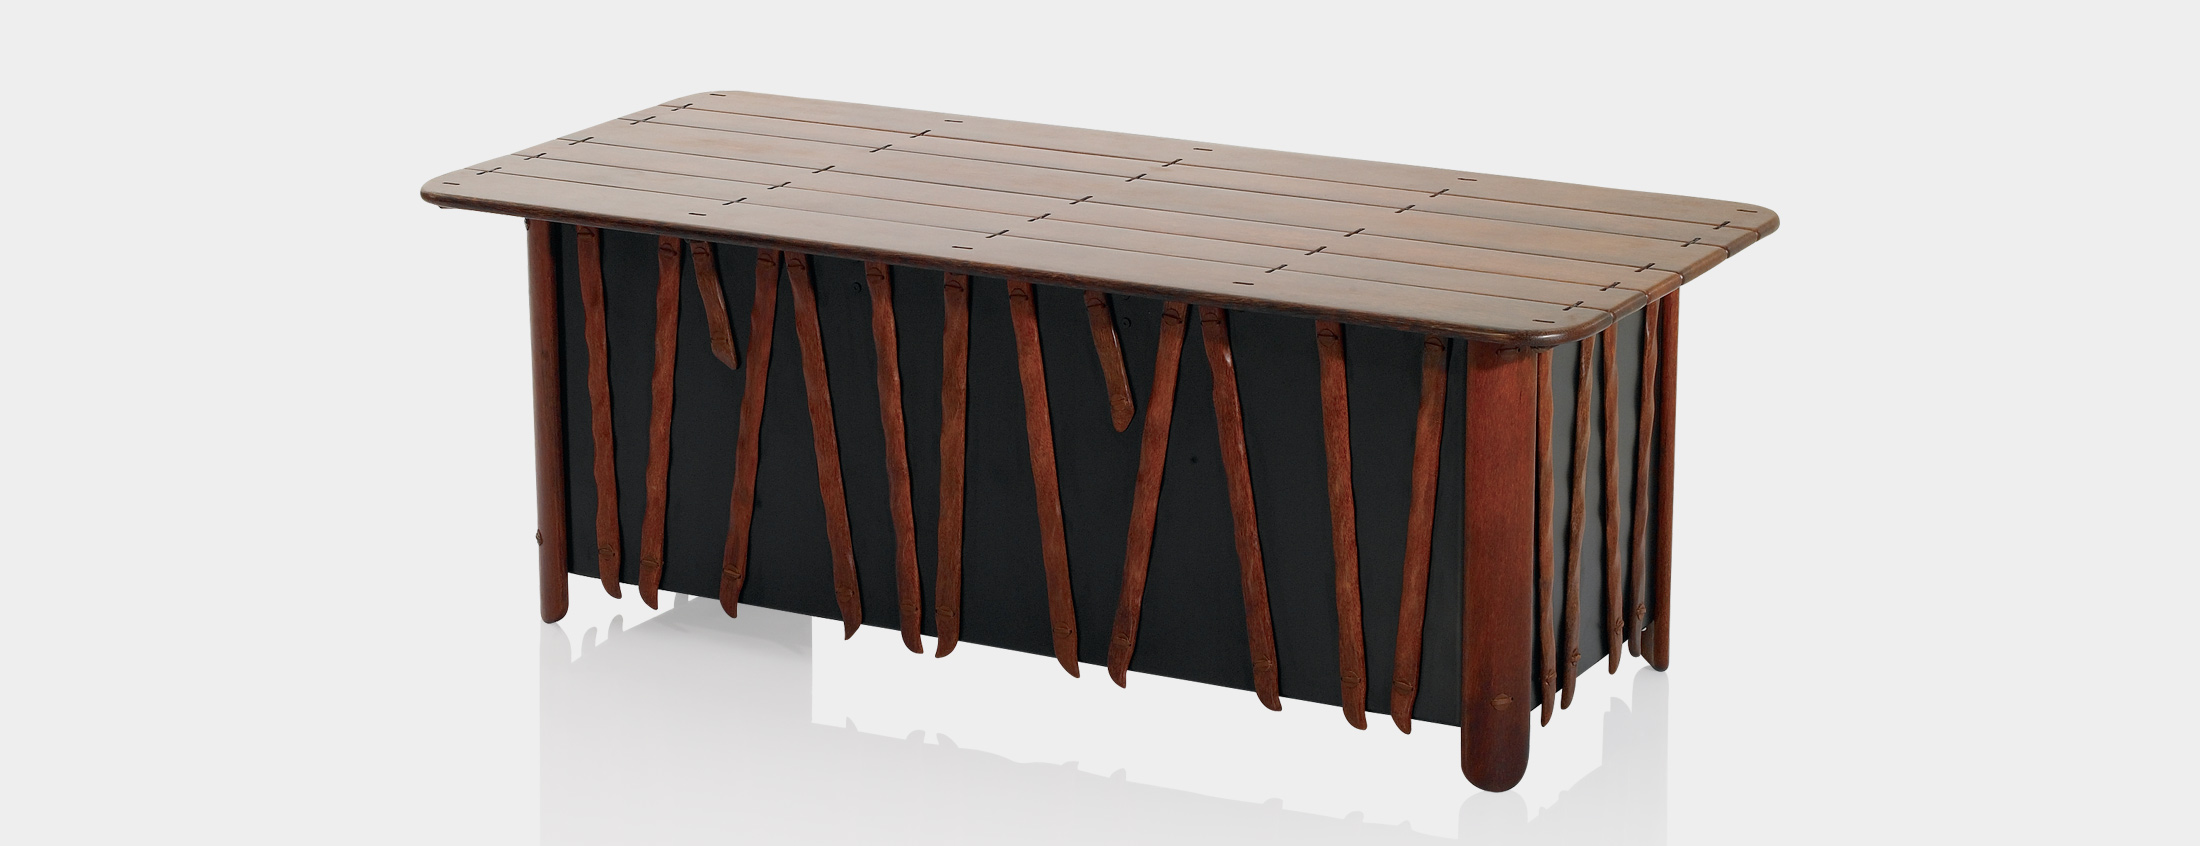 PRODUCT DESCRIPTION Palmwood unit with leather bindings. Supported with a wooden frame. Decorated with traditional grass weaving...